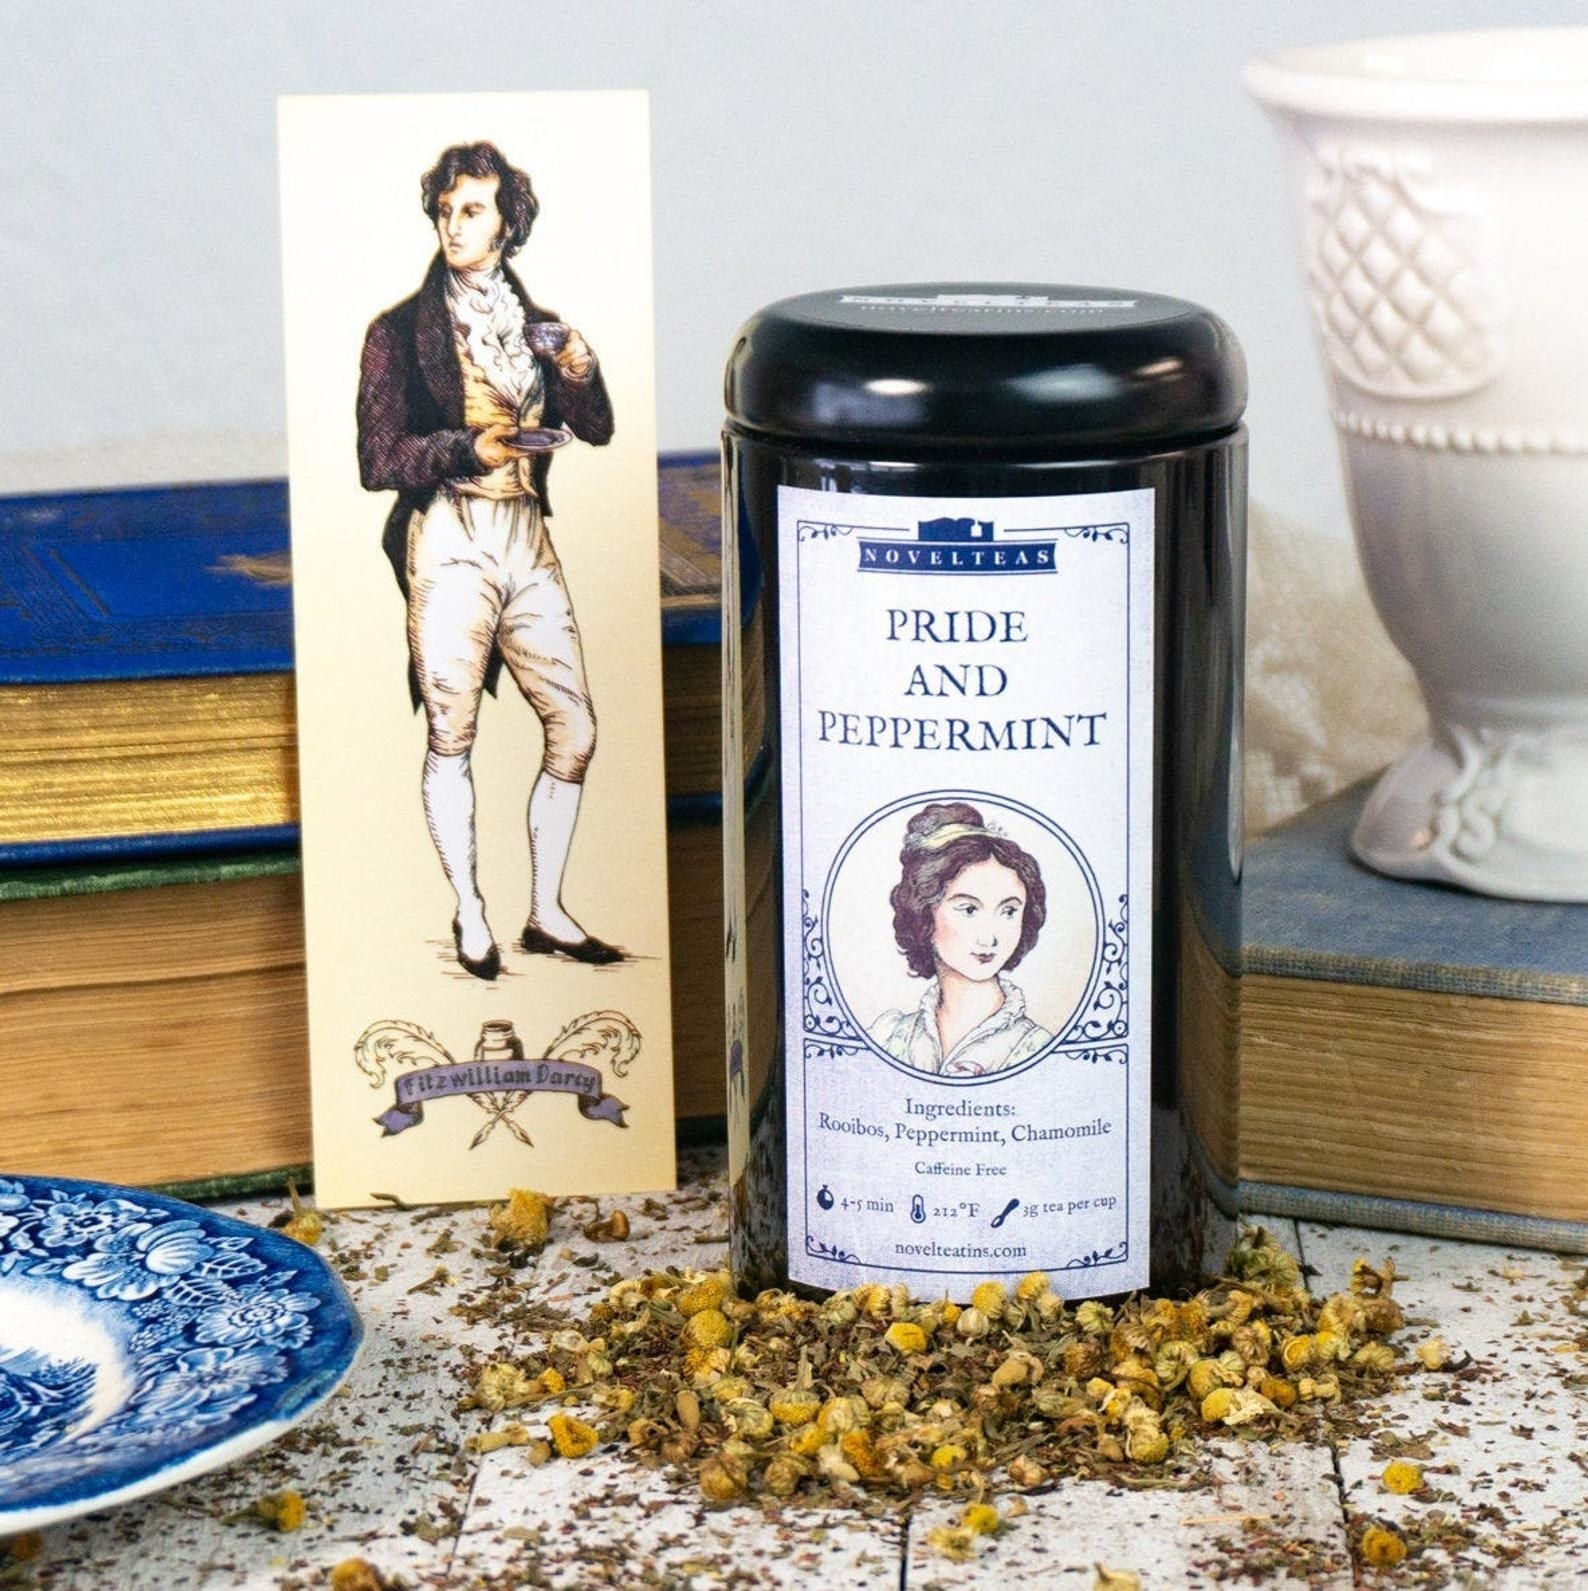 the tea tin and bookmark